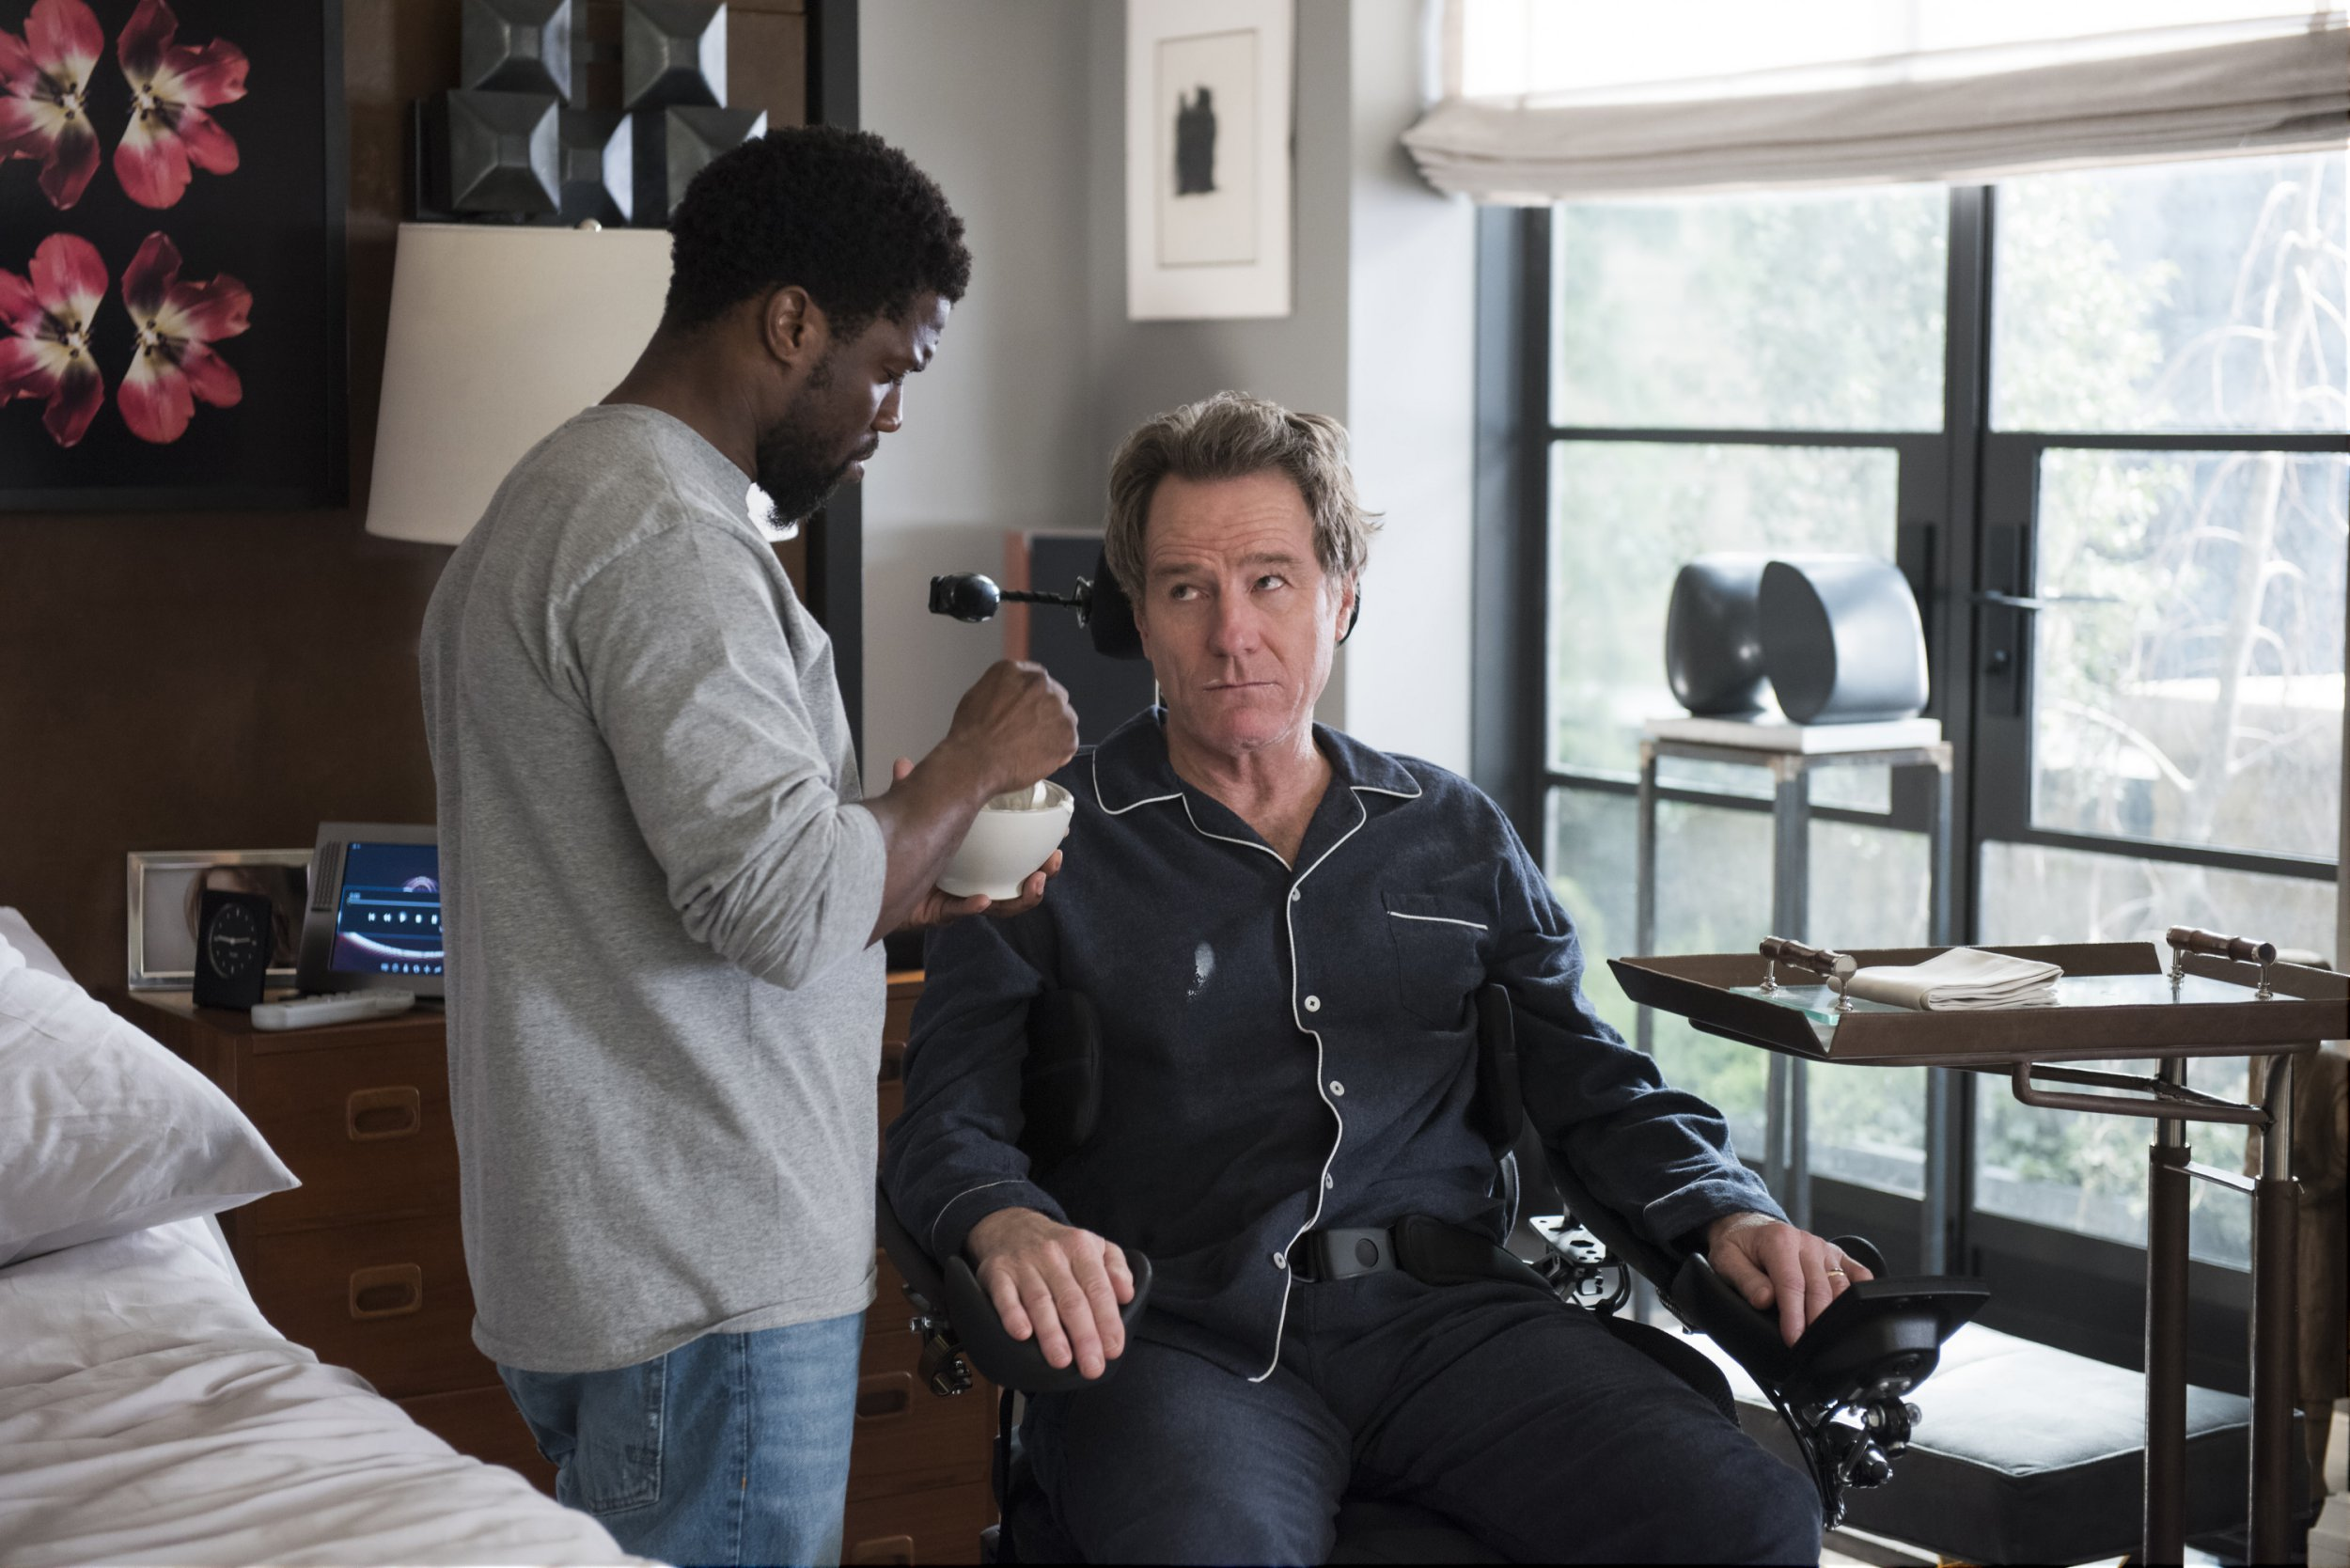 Why cast Bryan Cranston as a quadriplegic man when disabled actors are queuing up for roles